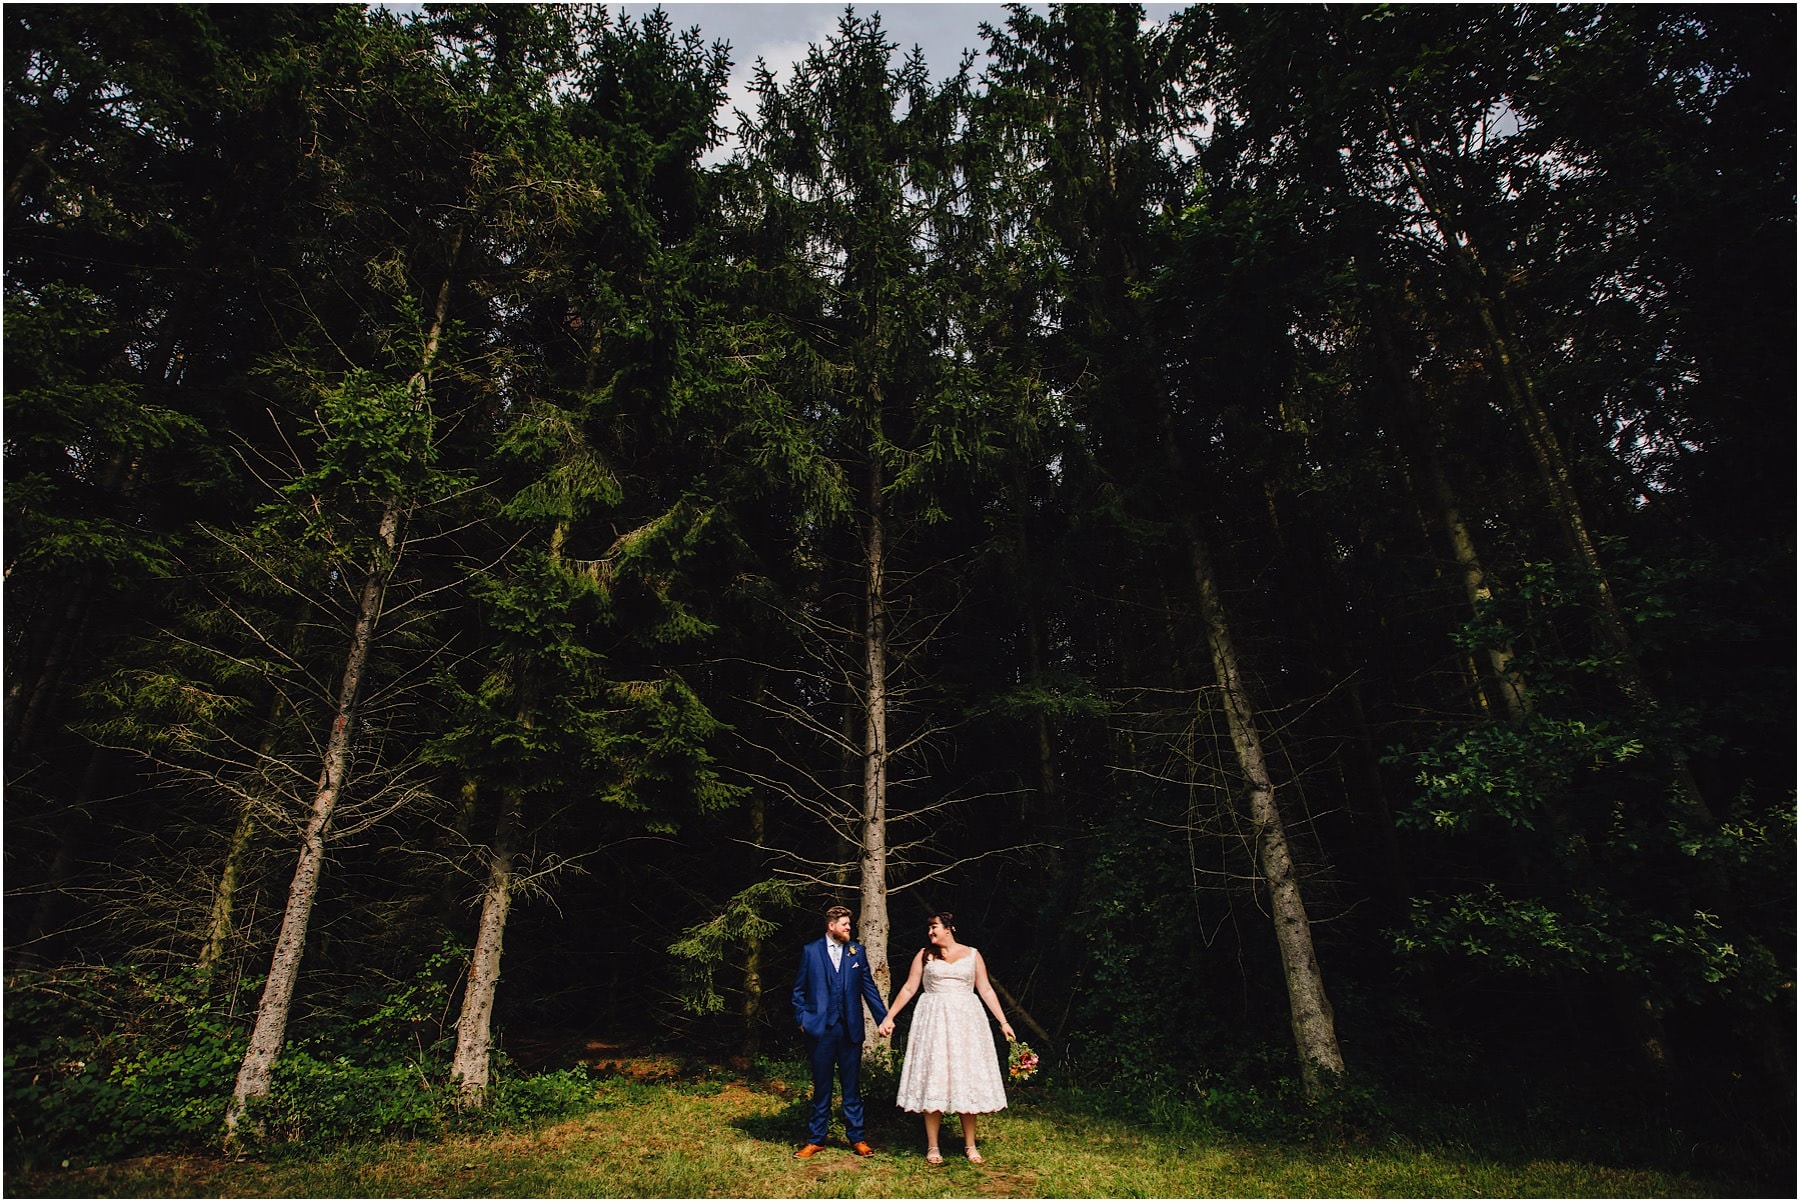 bride and groom standing infant of tall trees